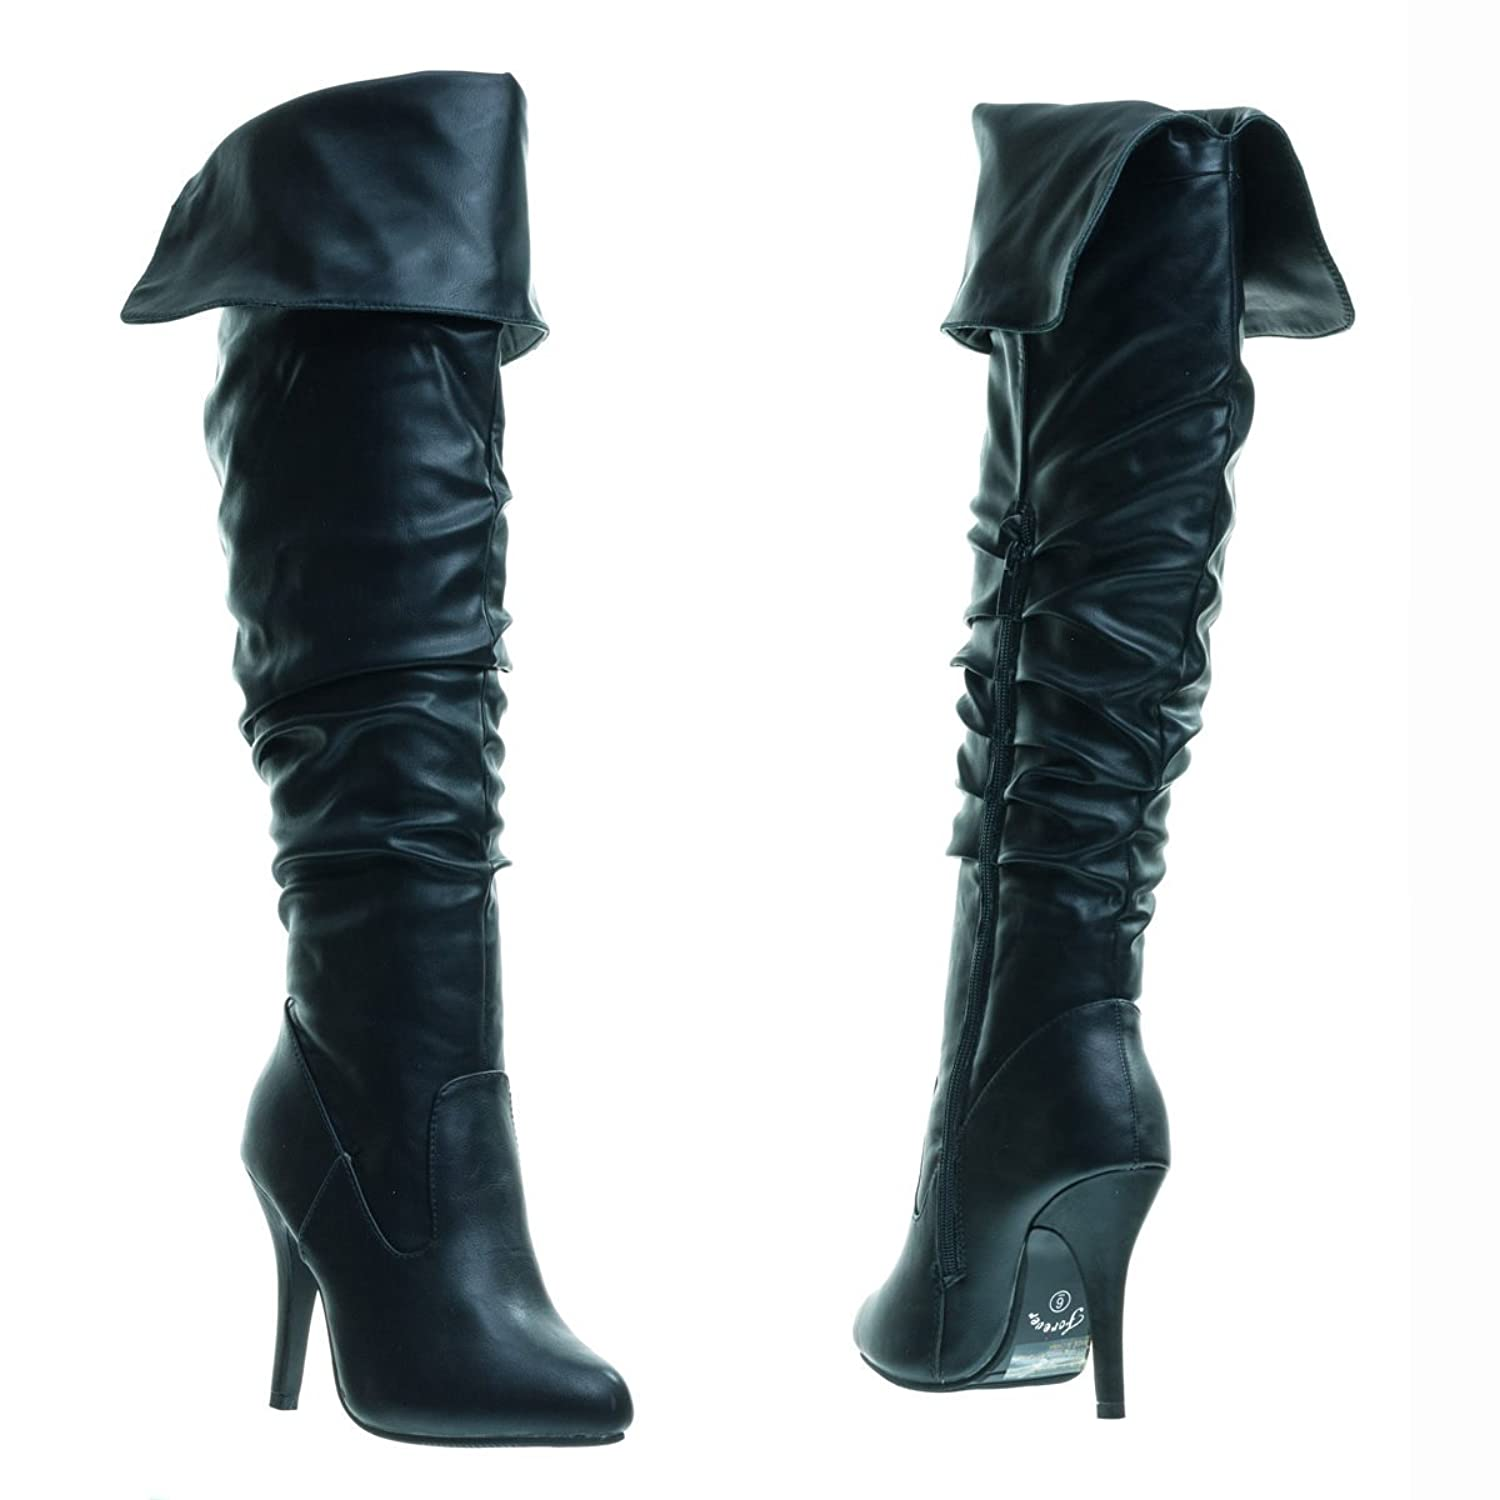 Women's Slouchy Over-The-Knee Thigh-High Foldable Cuff Black High-Heel Boots - DeluxeAdultCostumes.com